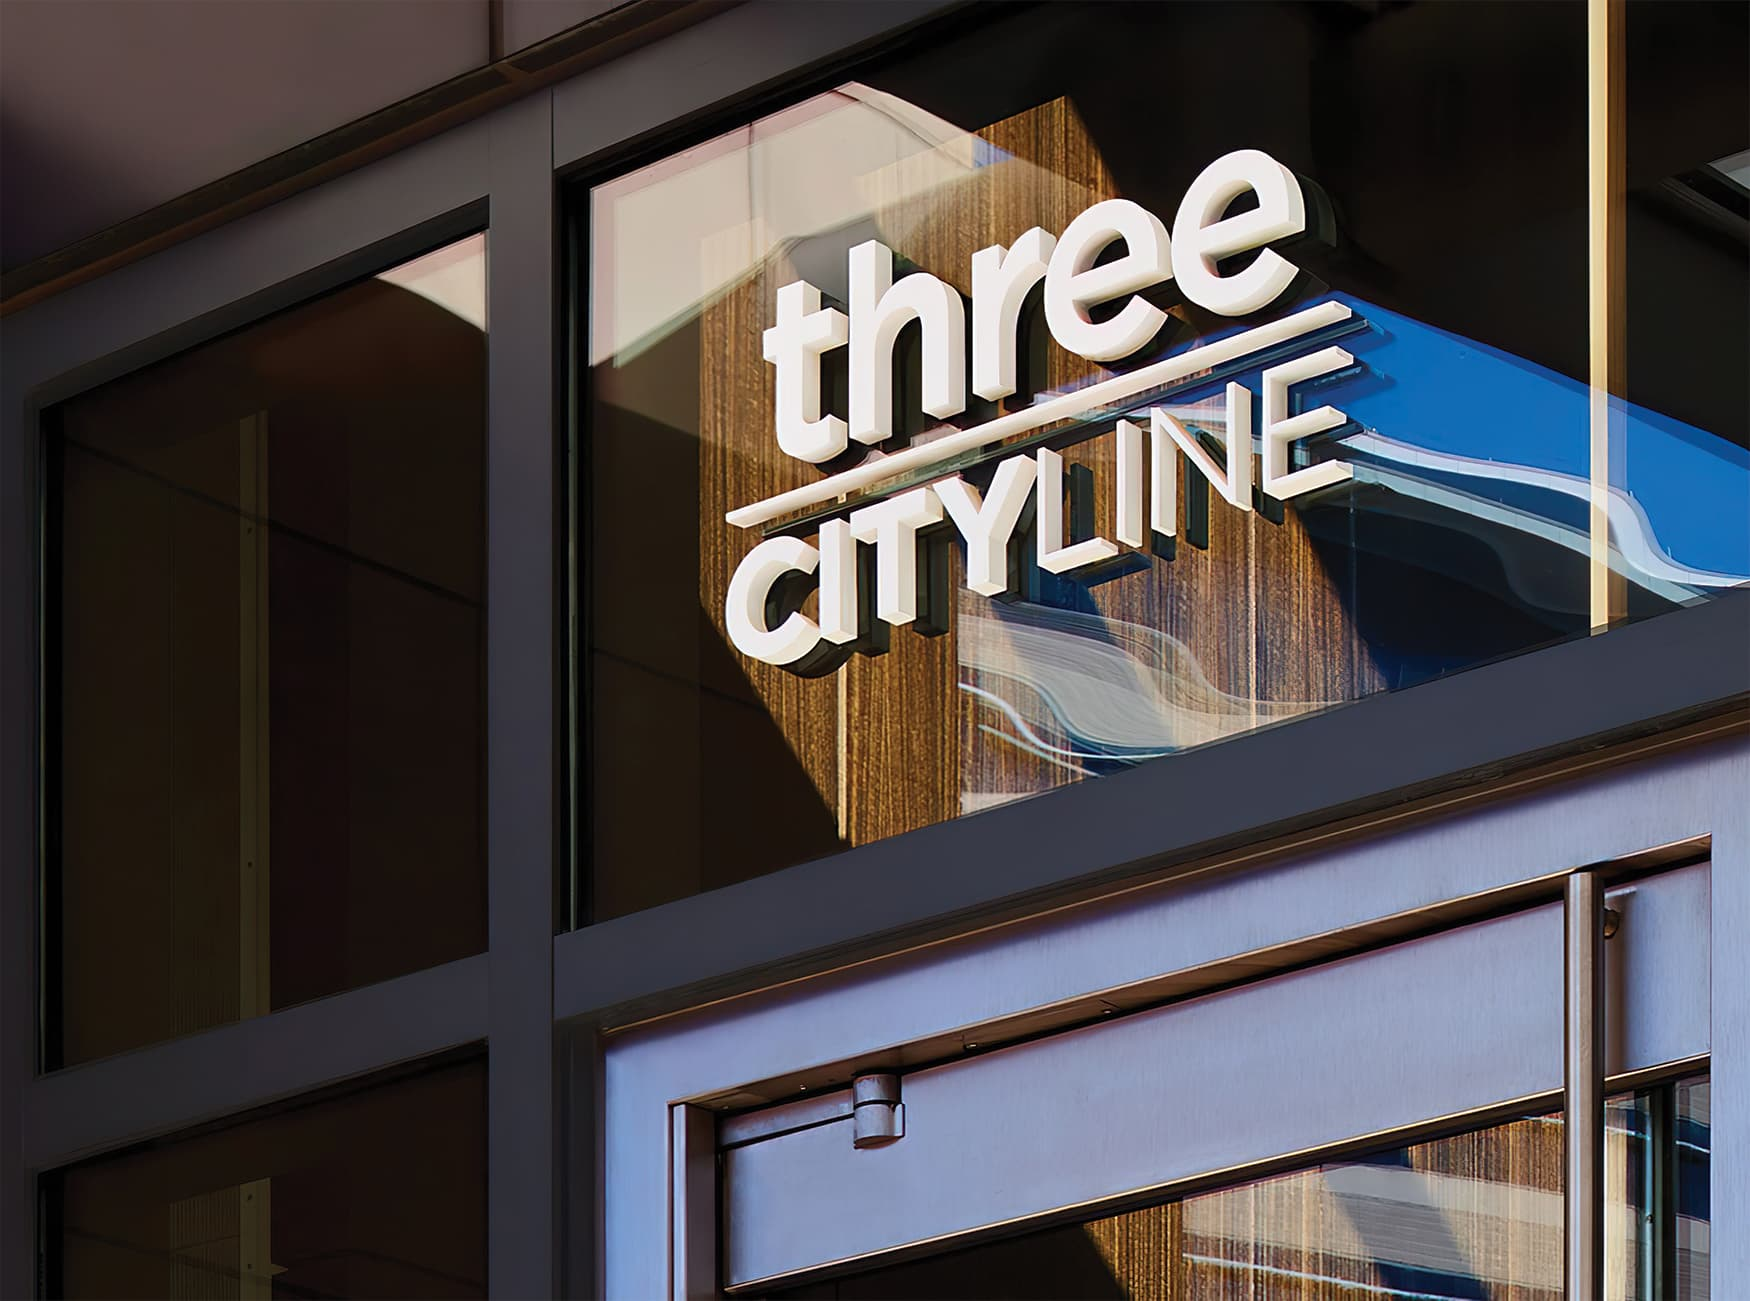 CityLine a mixed-use development in Dallas, Texas. Identity and wayfinding design. Project Identity Signage. Fascia Signage.